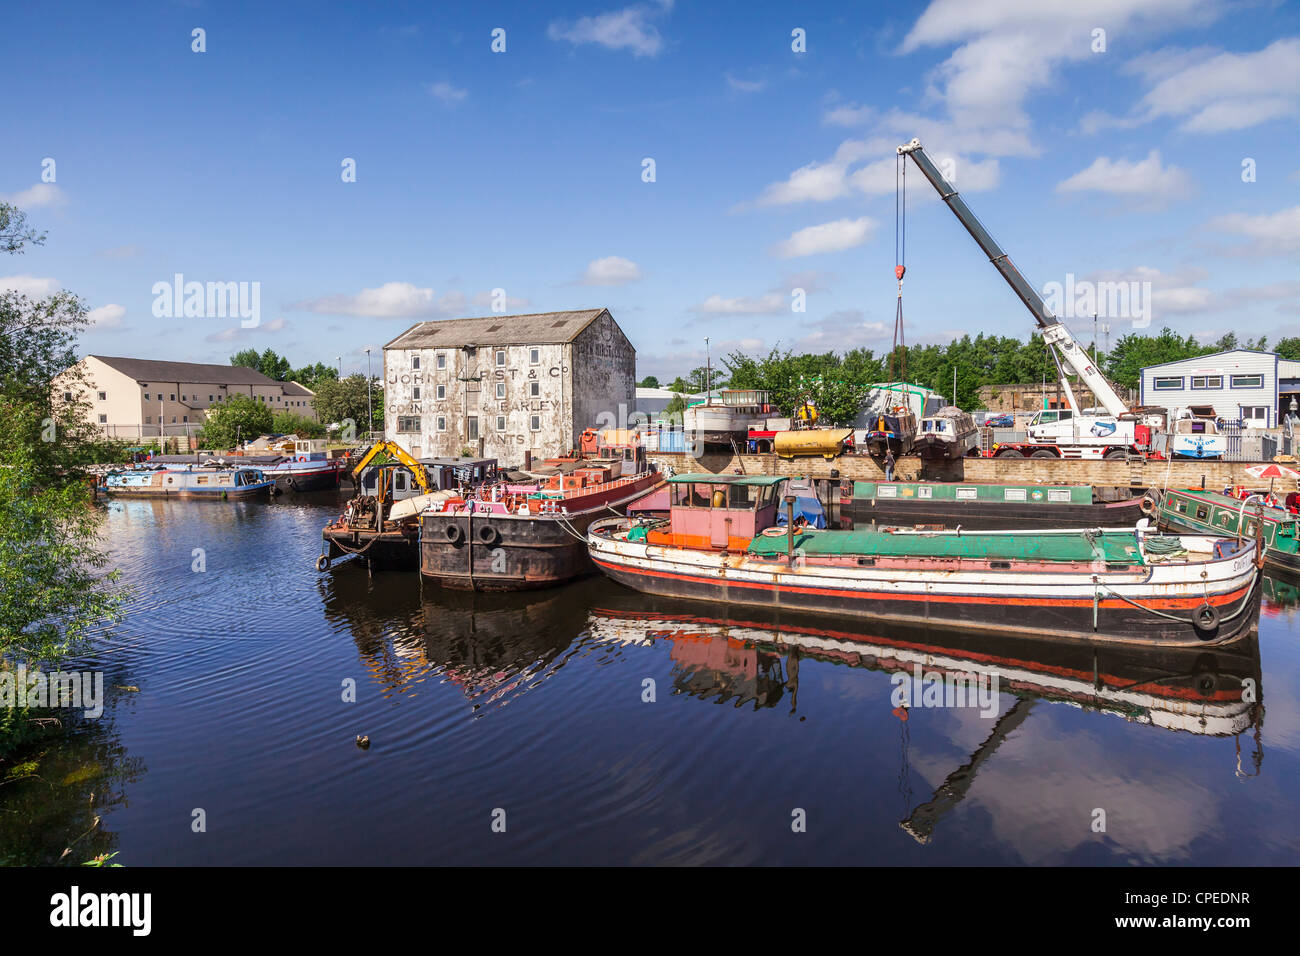 River and Canal boats on the River Calder at Wakefield Waterfront, West Yorkshire. - Stock Image